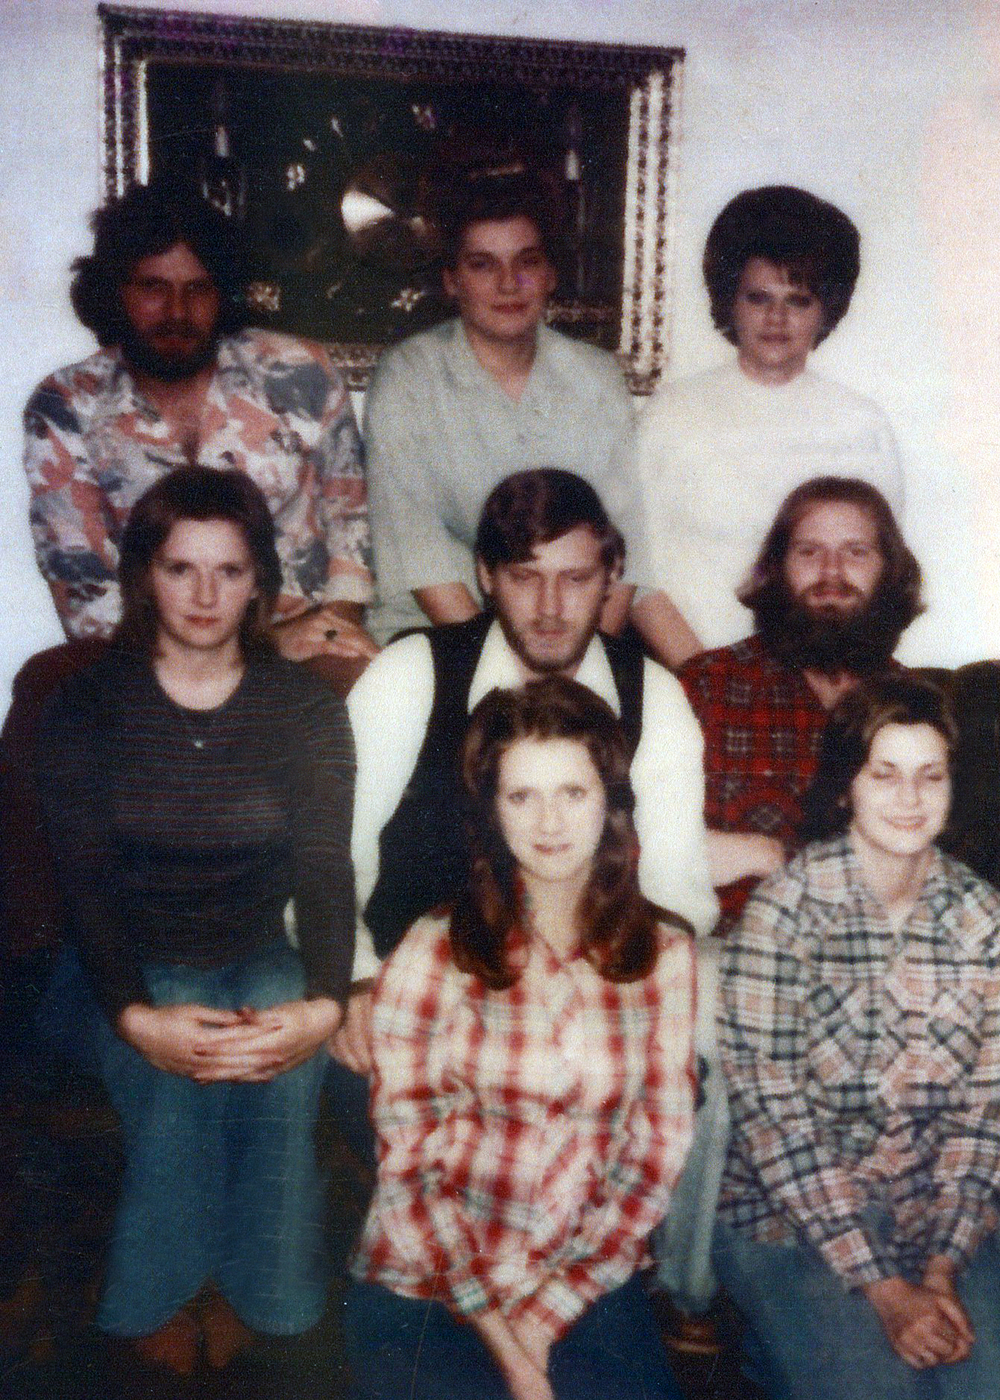 Denise (bottom right) and most of her siblings.